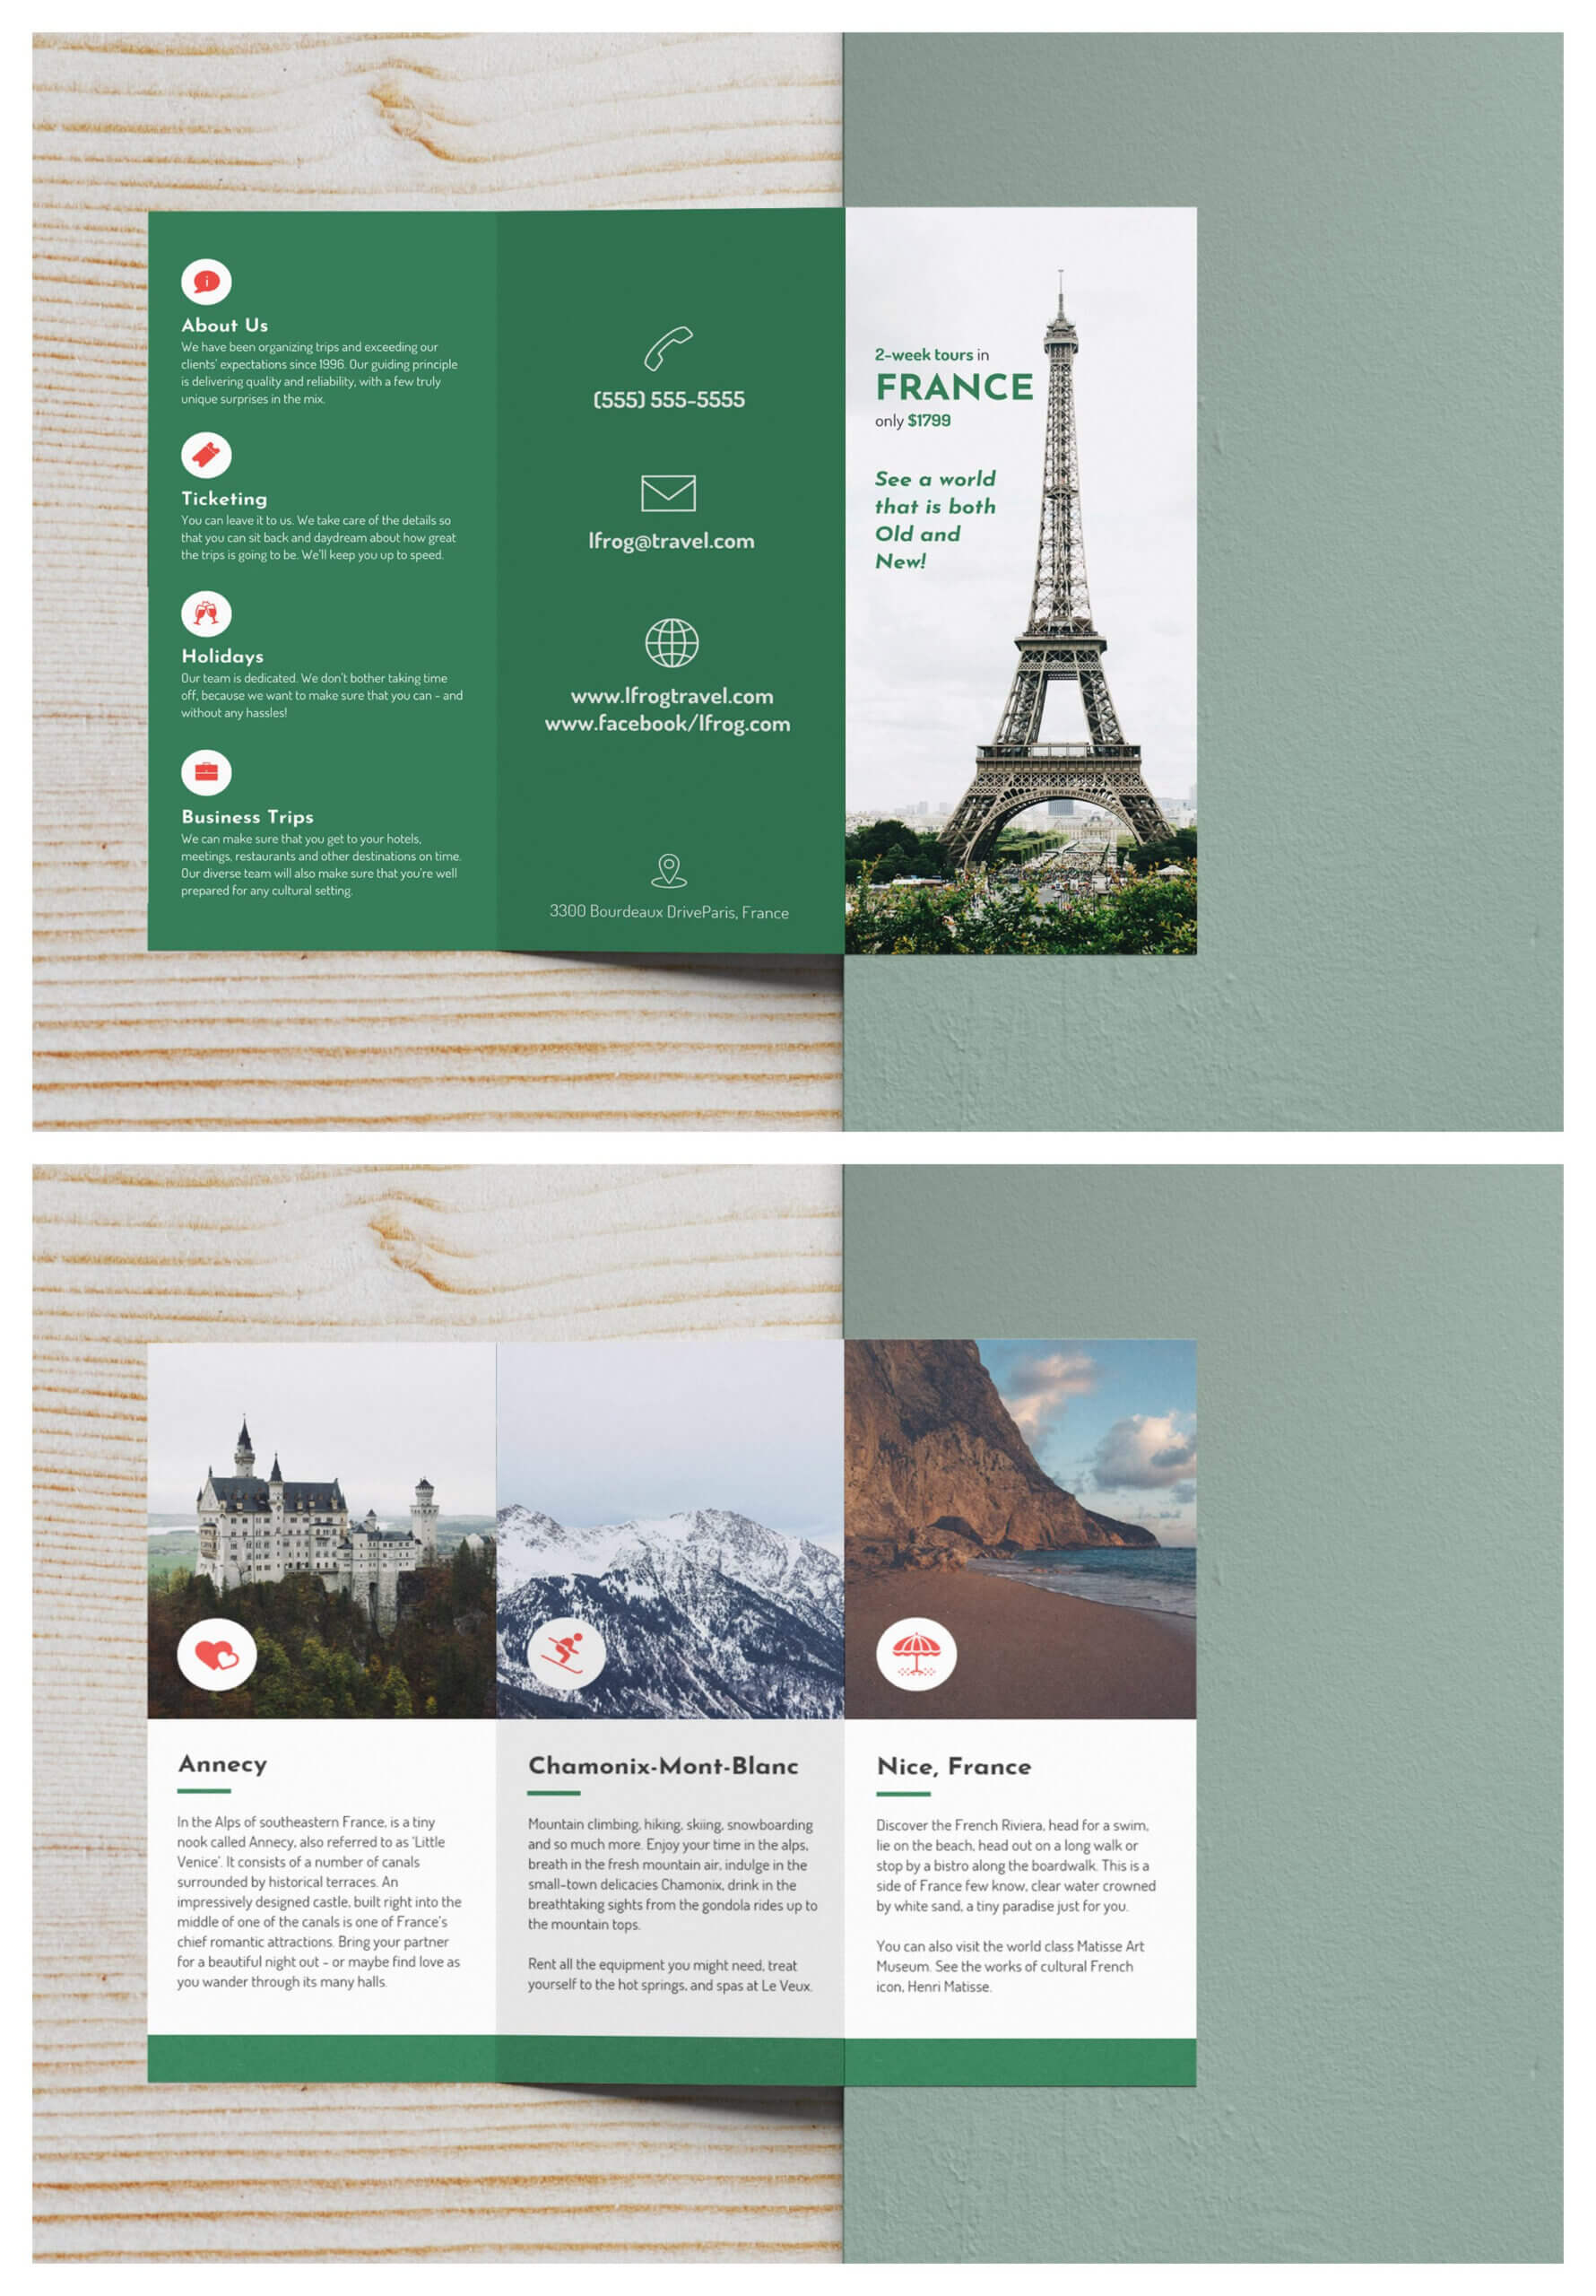 15+ Travel Brochure Examples To Inspire Your Design Regarding Travel Brochure Template For Students